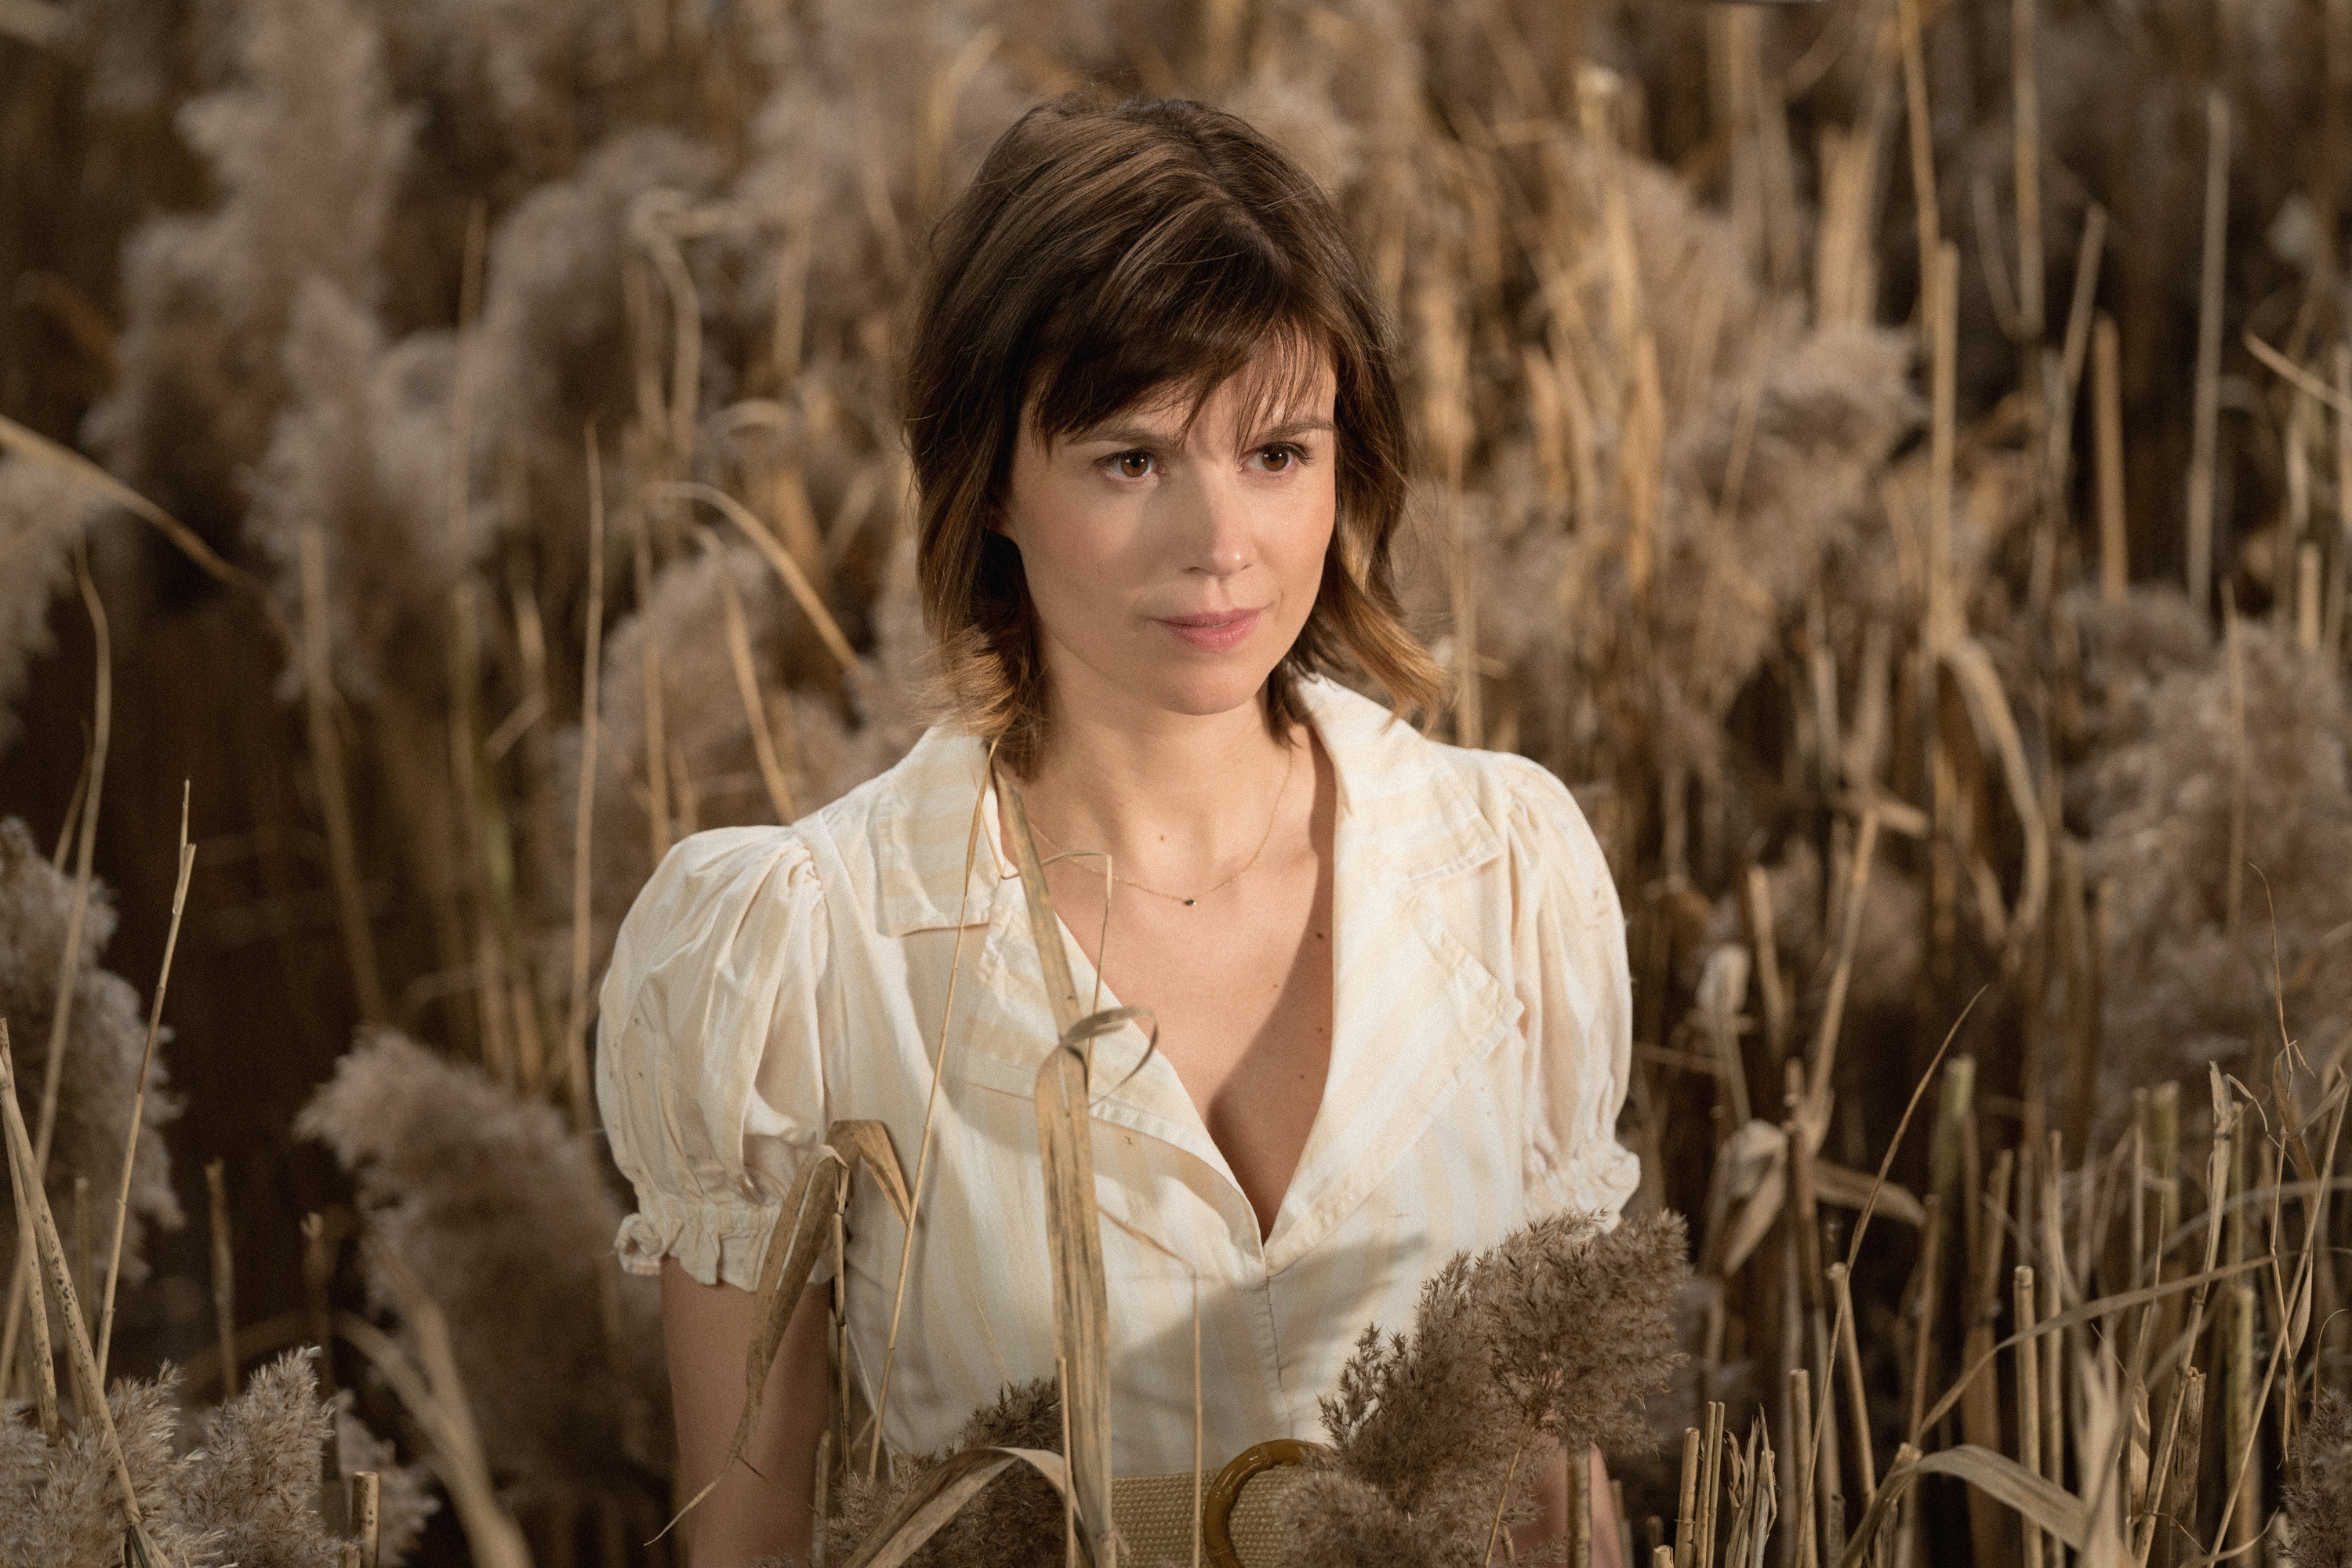 Katja Herbers as Kristen Bouchard standing in a wheat field during a dream sequence in Evil